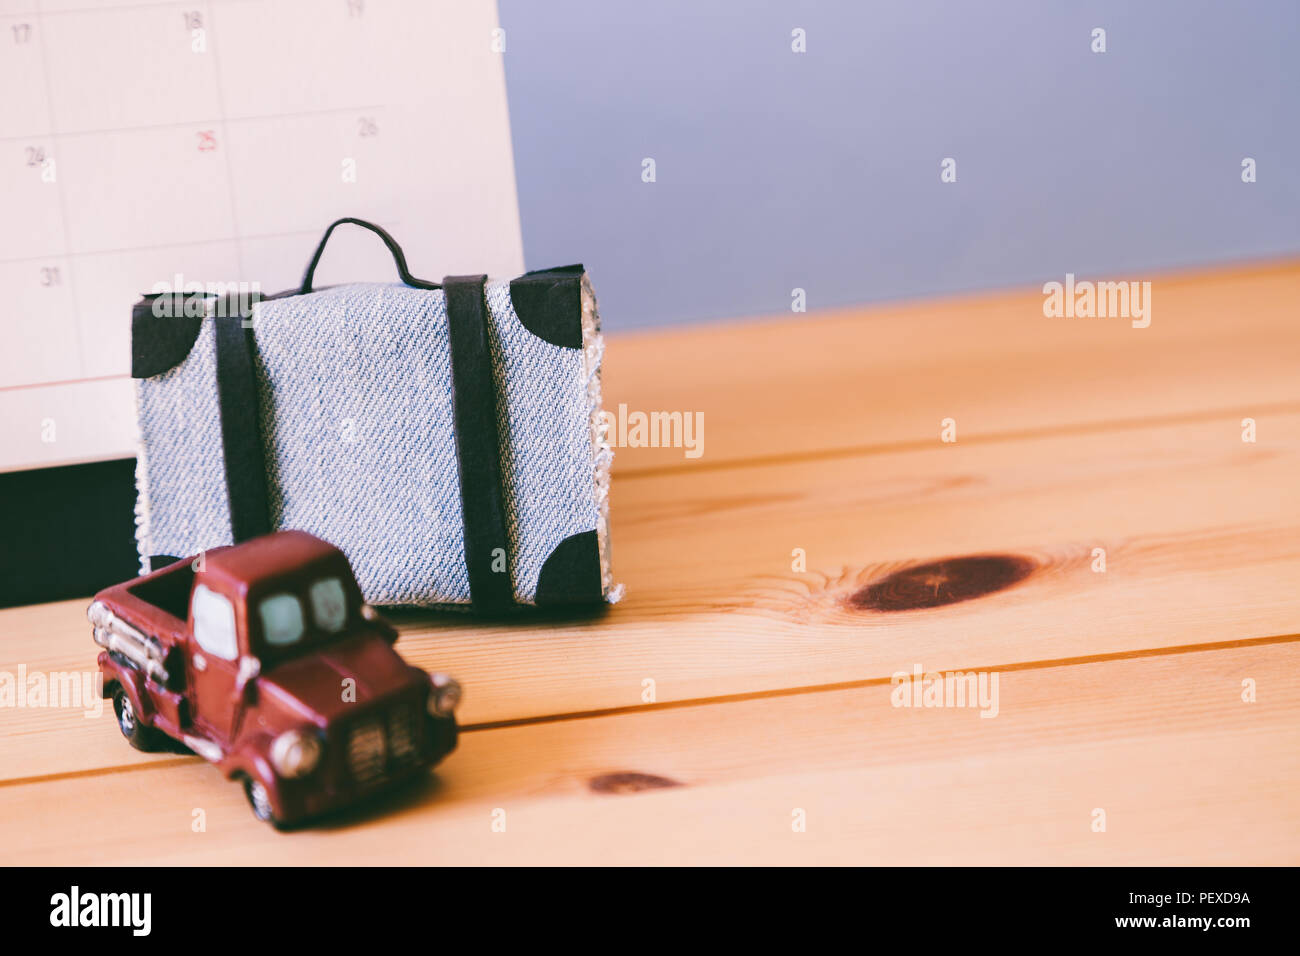 Travel suitcase, car and calendar on table, Summer vacation schedule concept - Stock Image